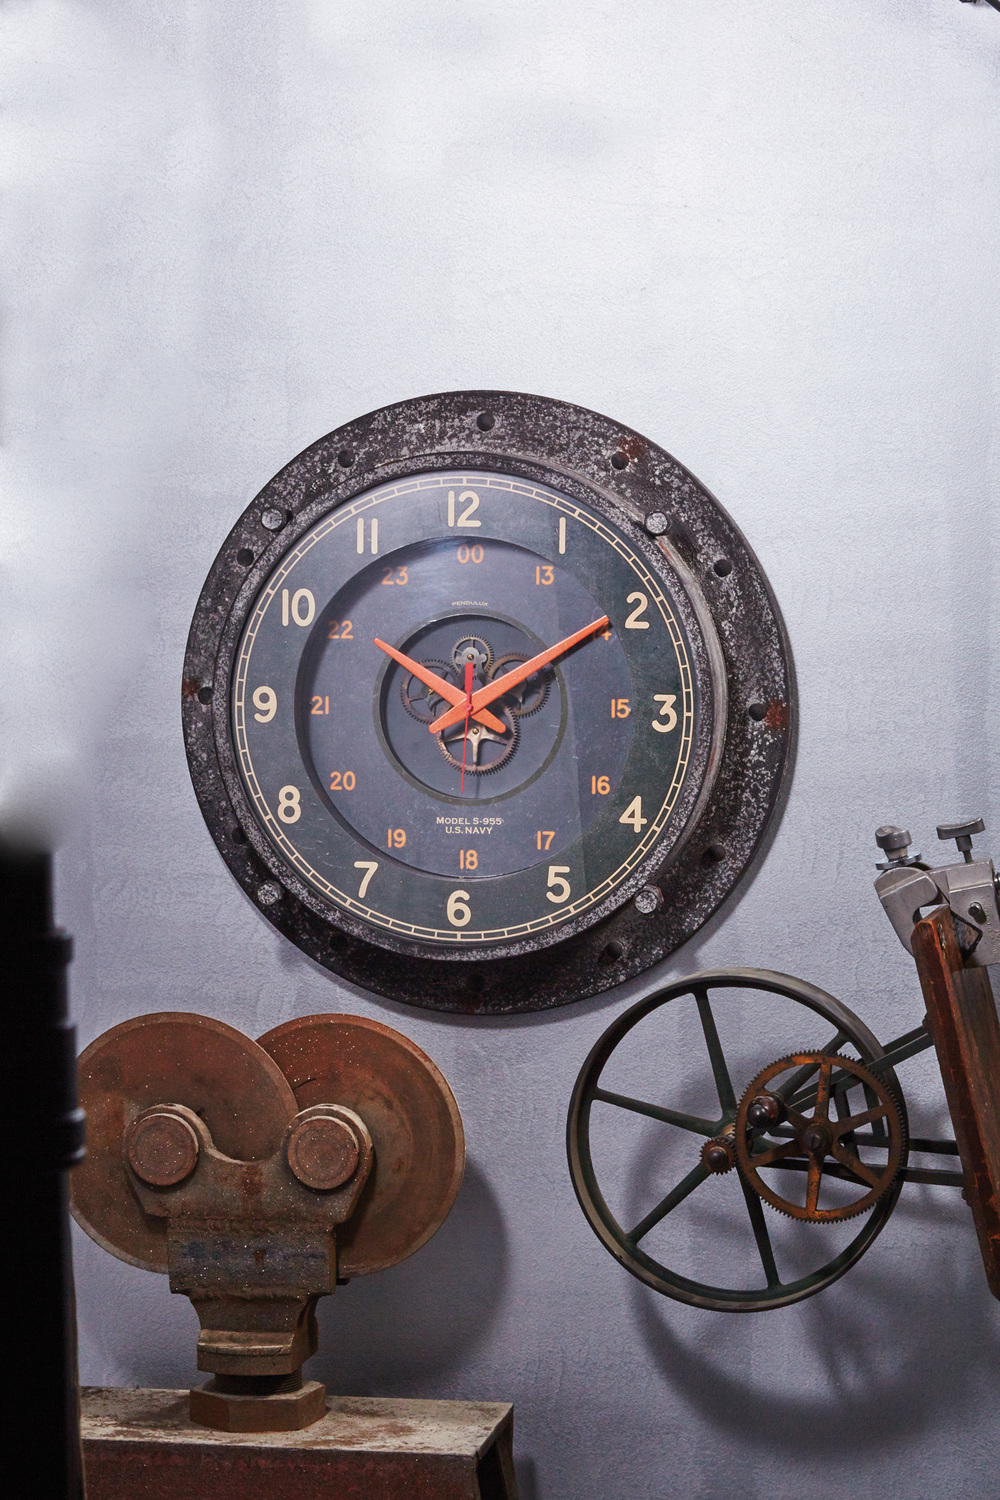 Control-Room-Wall-Clock_situation.jpg